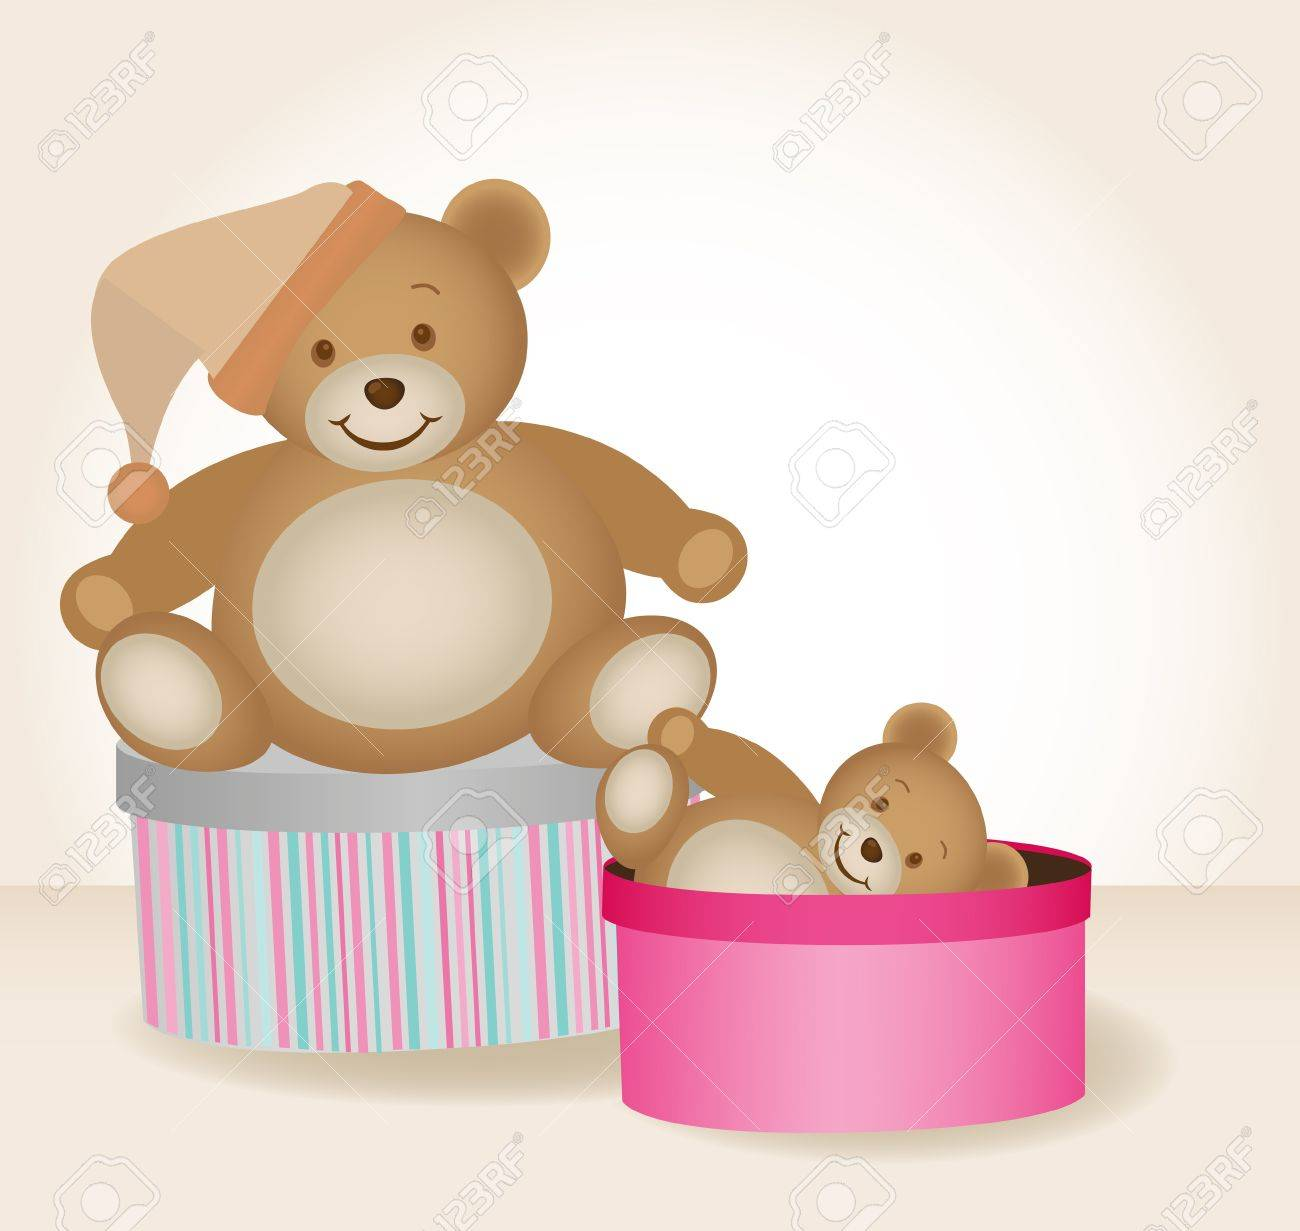 two cute teddy bears in gift boxes isolated Stock Vector - 10031636